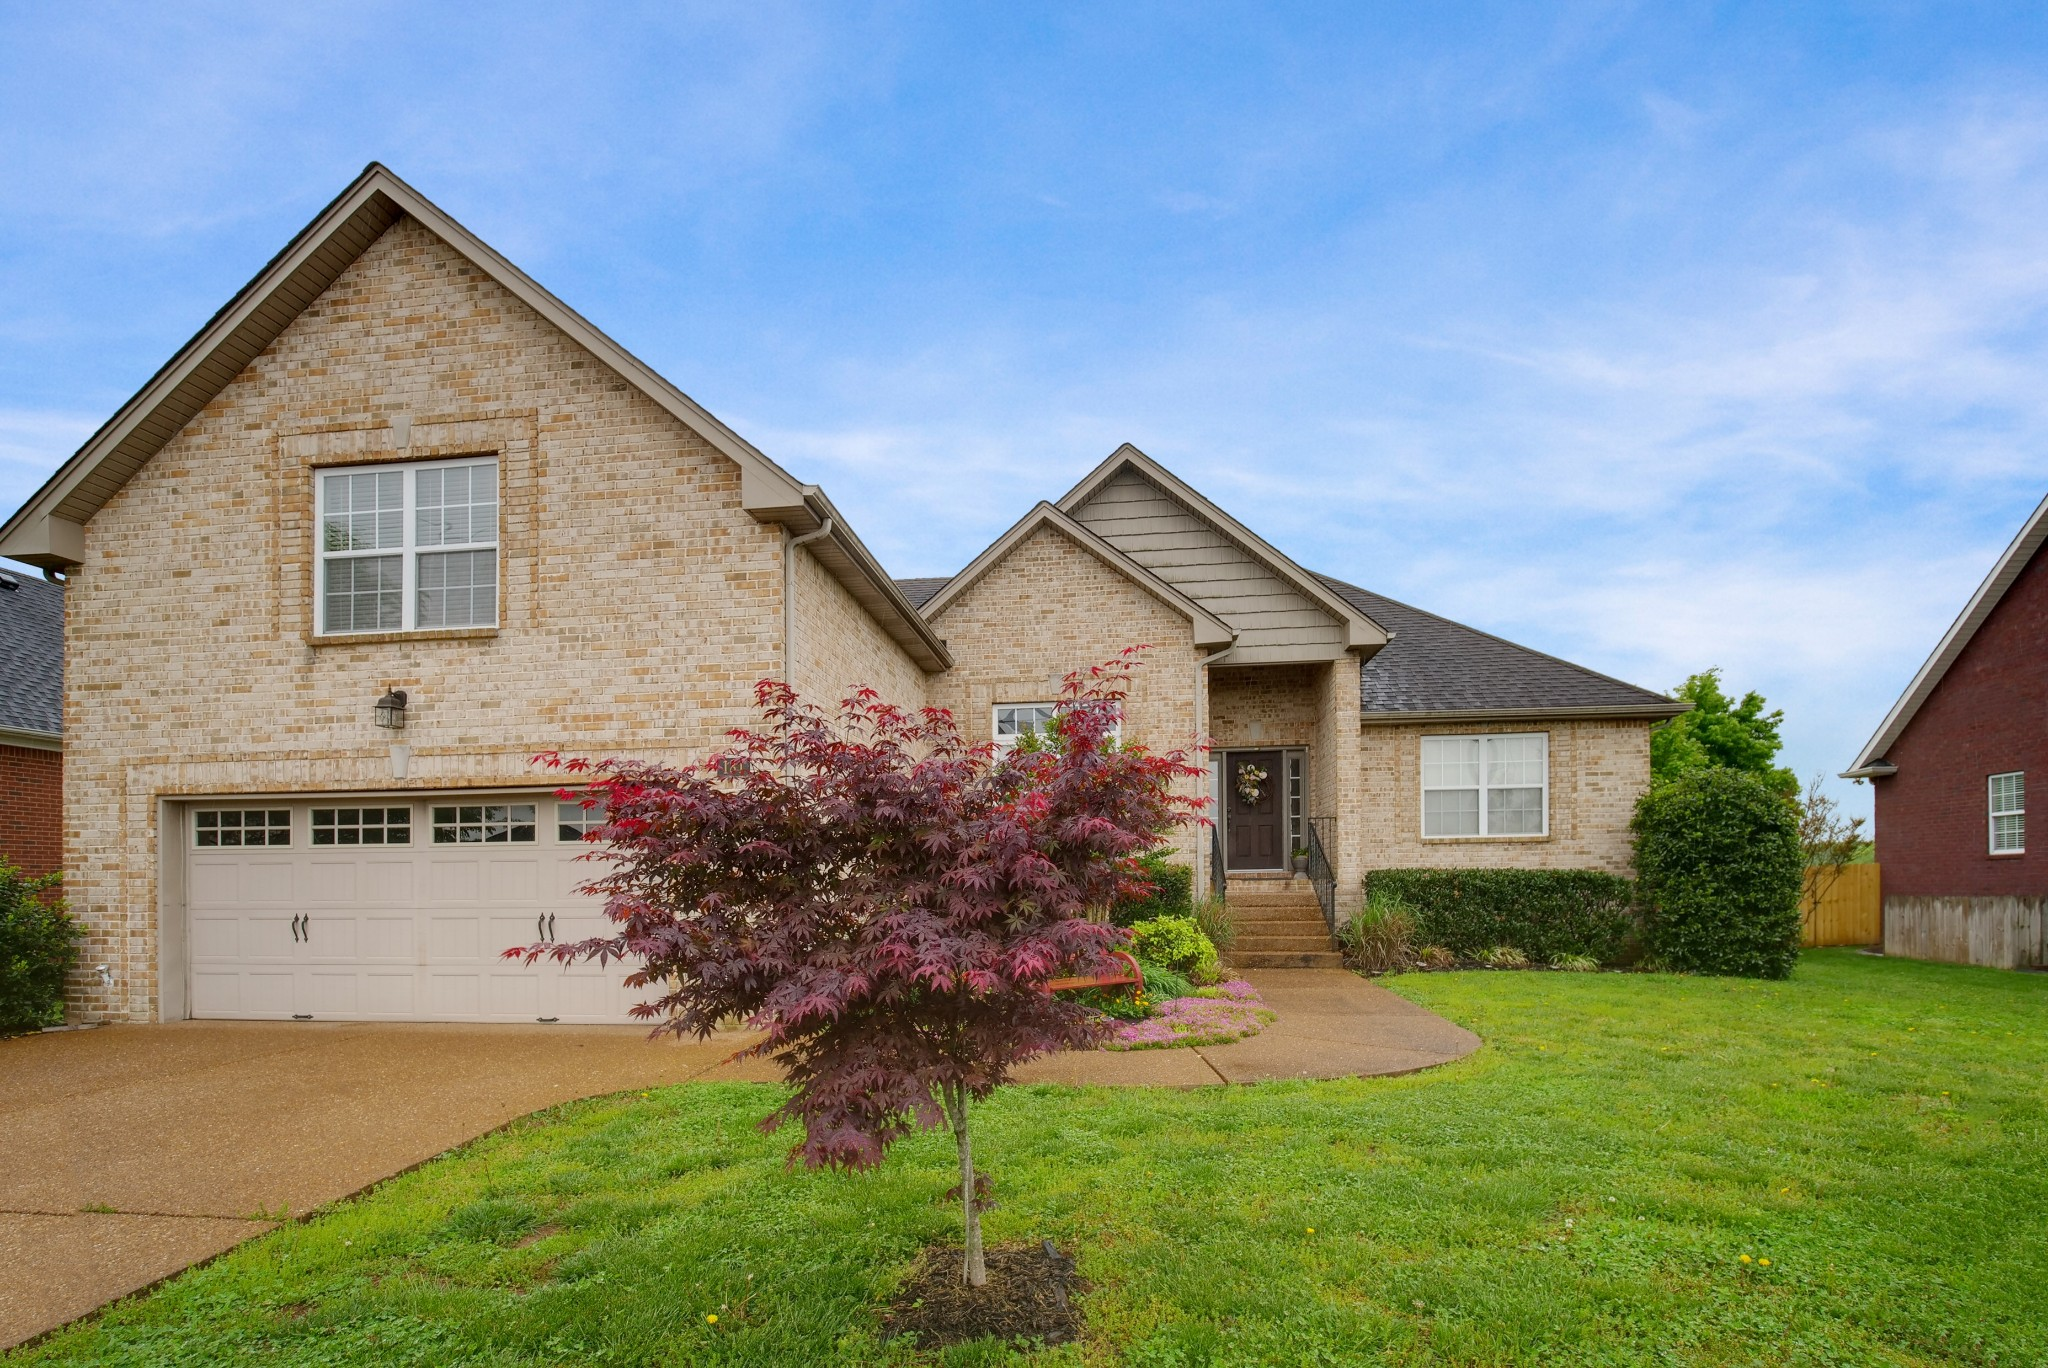 181 Stanley Dr Property Photo - Gallatin, TN real estate listing